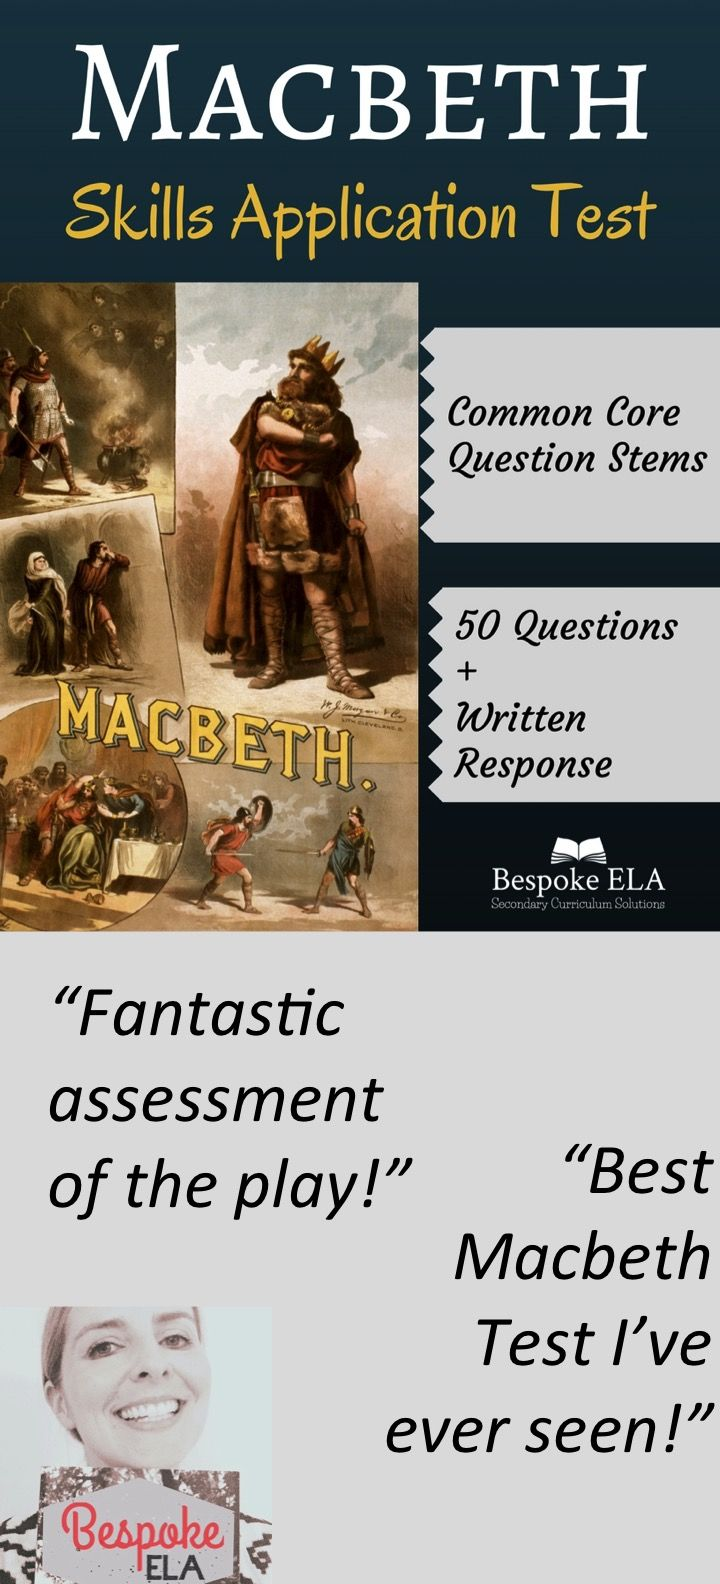 This product by Bespoke ELA uses COMMON CORE Question Stems to assess The Tragedy of Macbeth by William Shakespeare. There are 50 multiple-choice/ matching questions and a written response that address all Acts of the play across various close-reading/ analysis/ interpretation skills. It's a great test to wrap-up the unit for Secondary ELA.